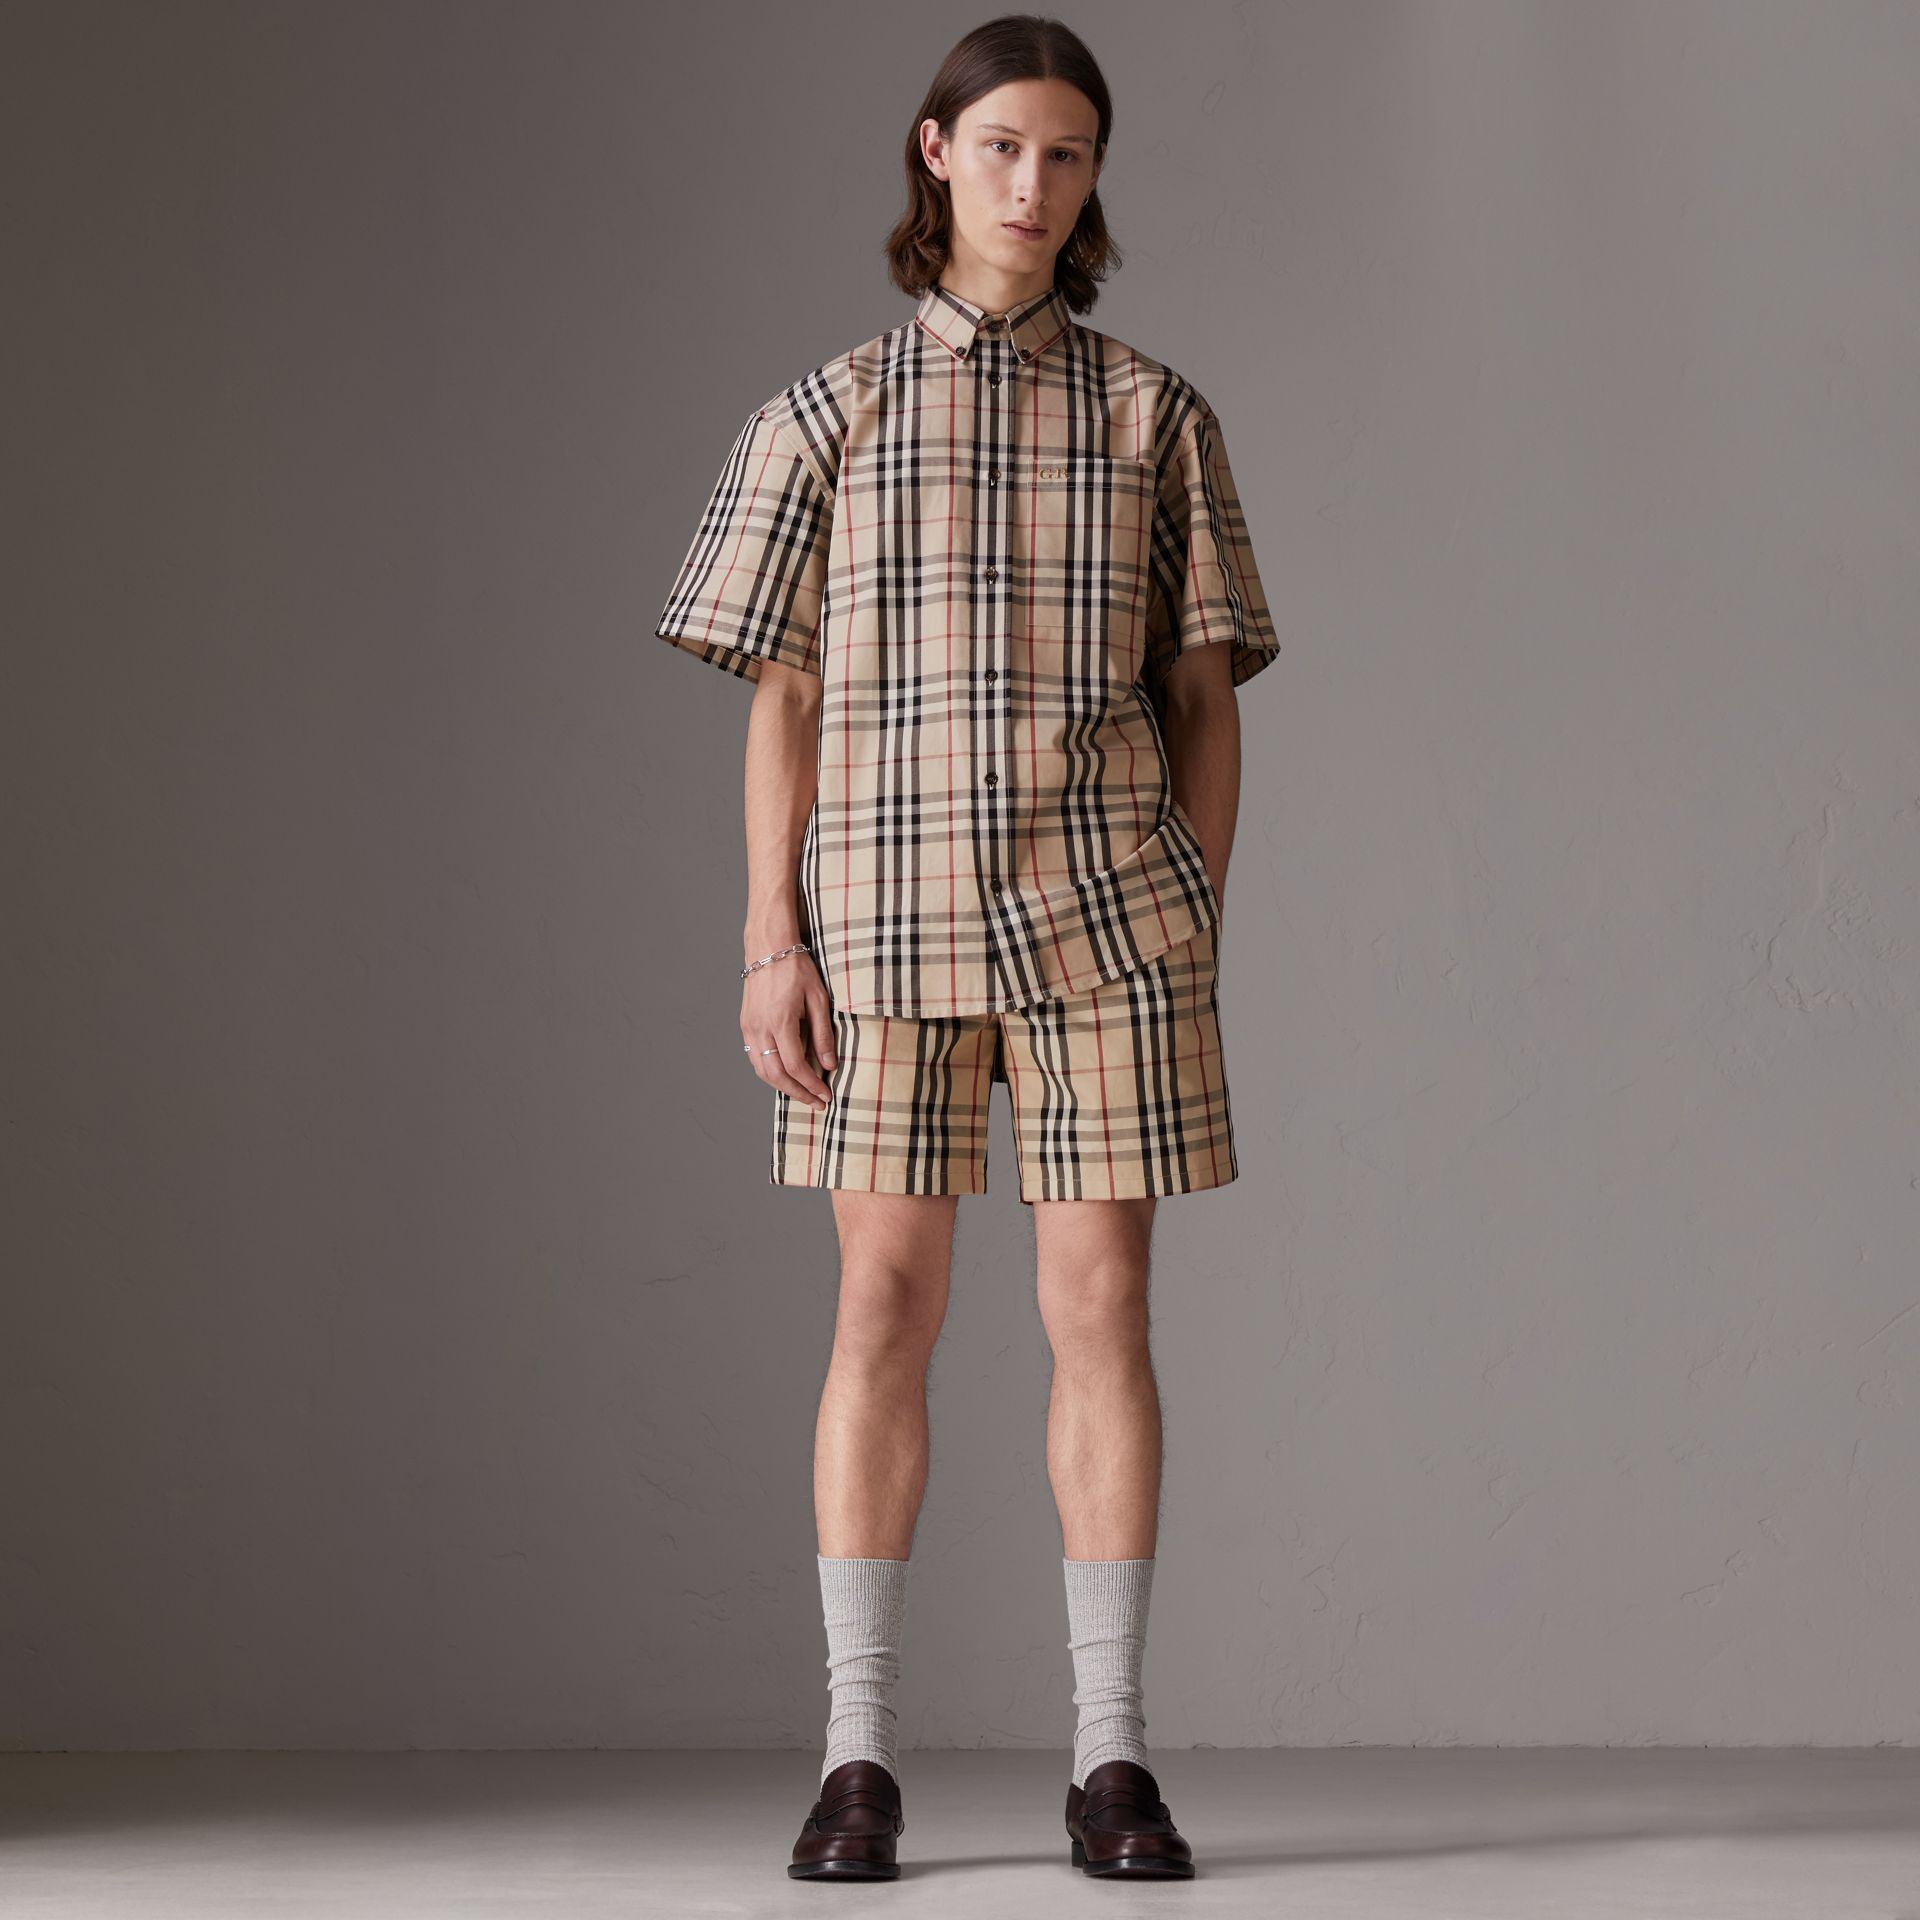 Gosha x Burberry Short-sleeve Check Shirt in Honey | Burberry Singapore - gallery image 2